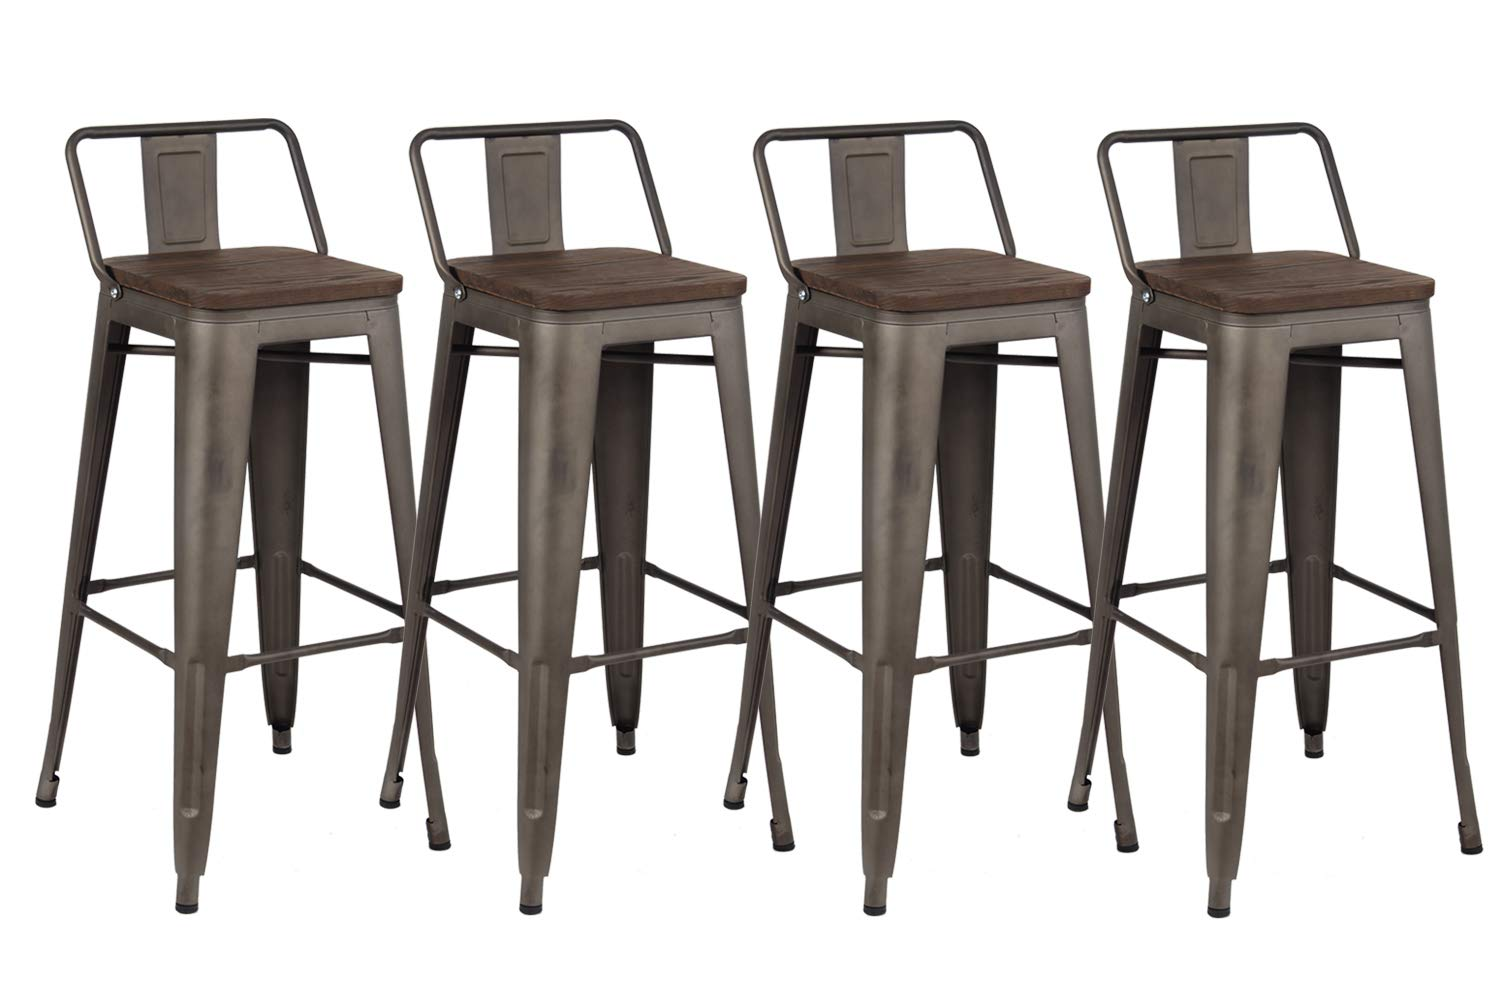 Kmax Industrial Metal Bar Stools Set - Height Bar Stools Chairs with Backs Indoor Outdoor, 30'', Set of 4, Gun by Kmax